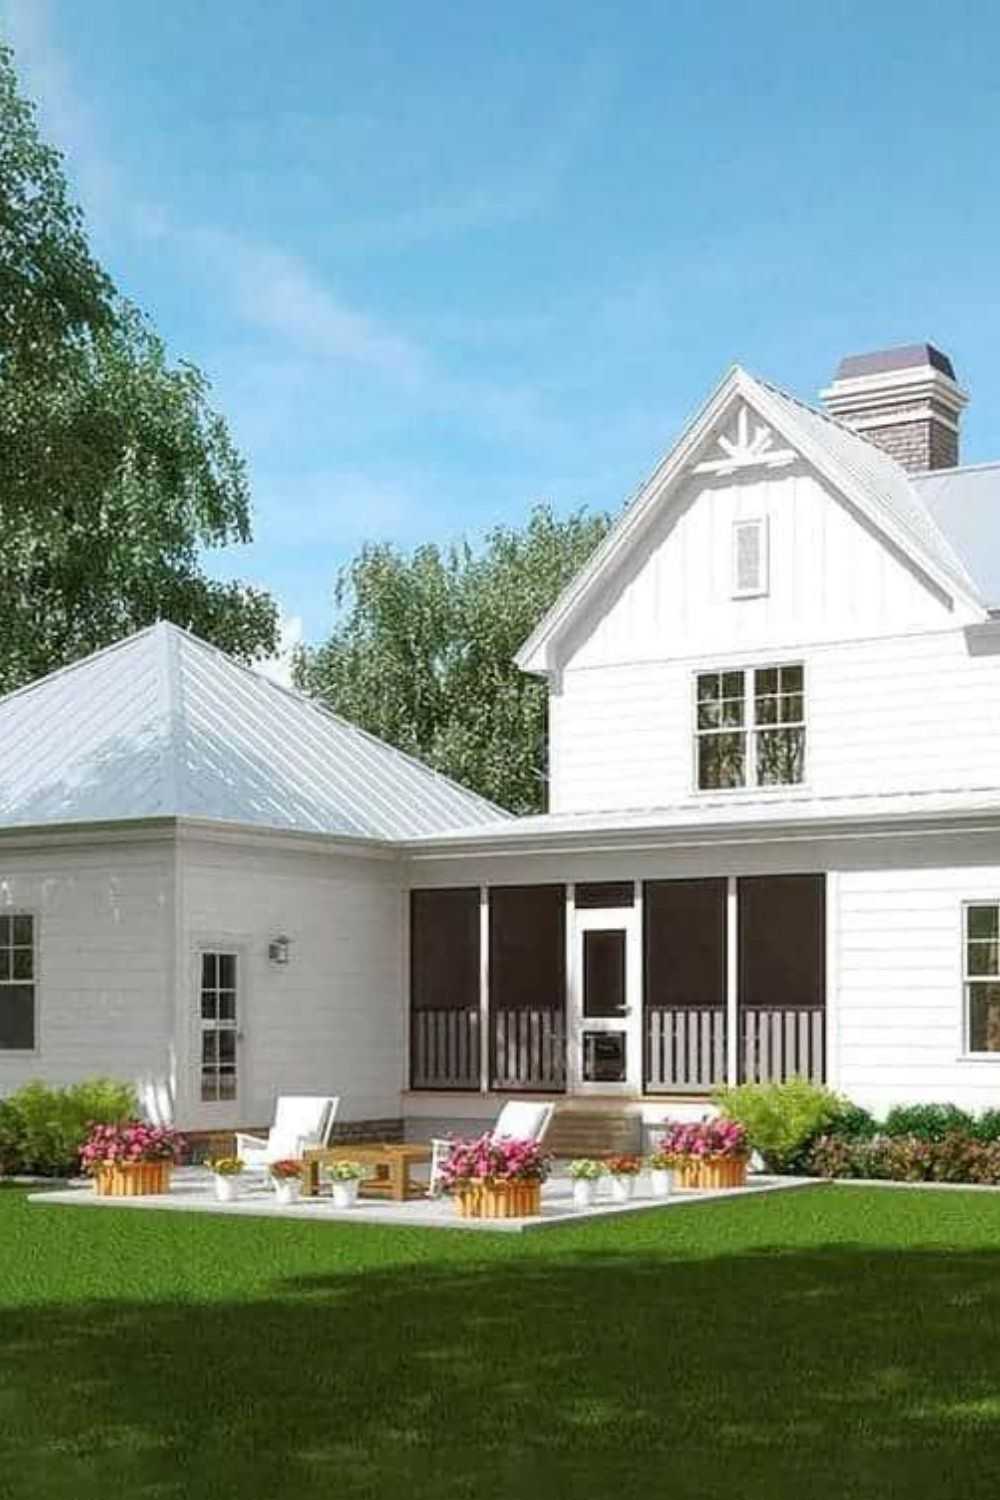 TwoStory 3Bedroom Classic Farmhouse (Floor Plan) in 2020